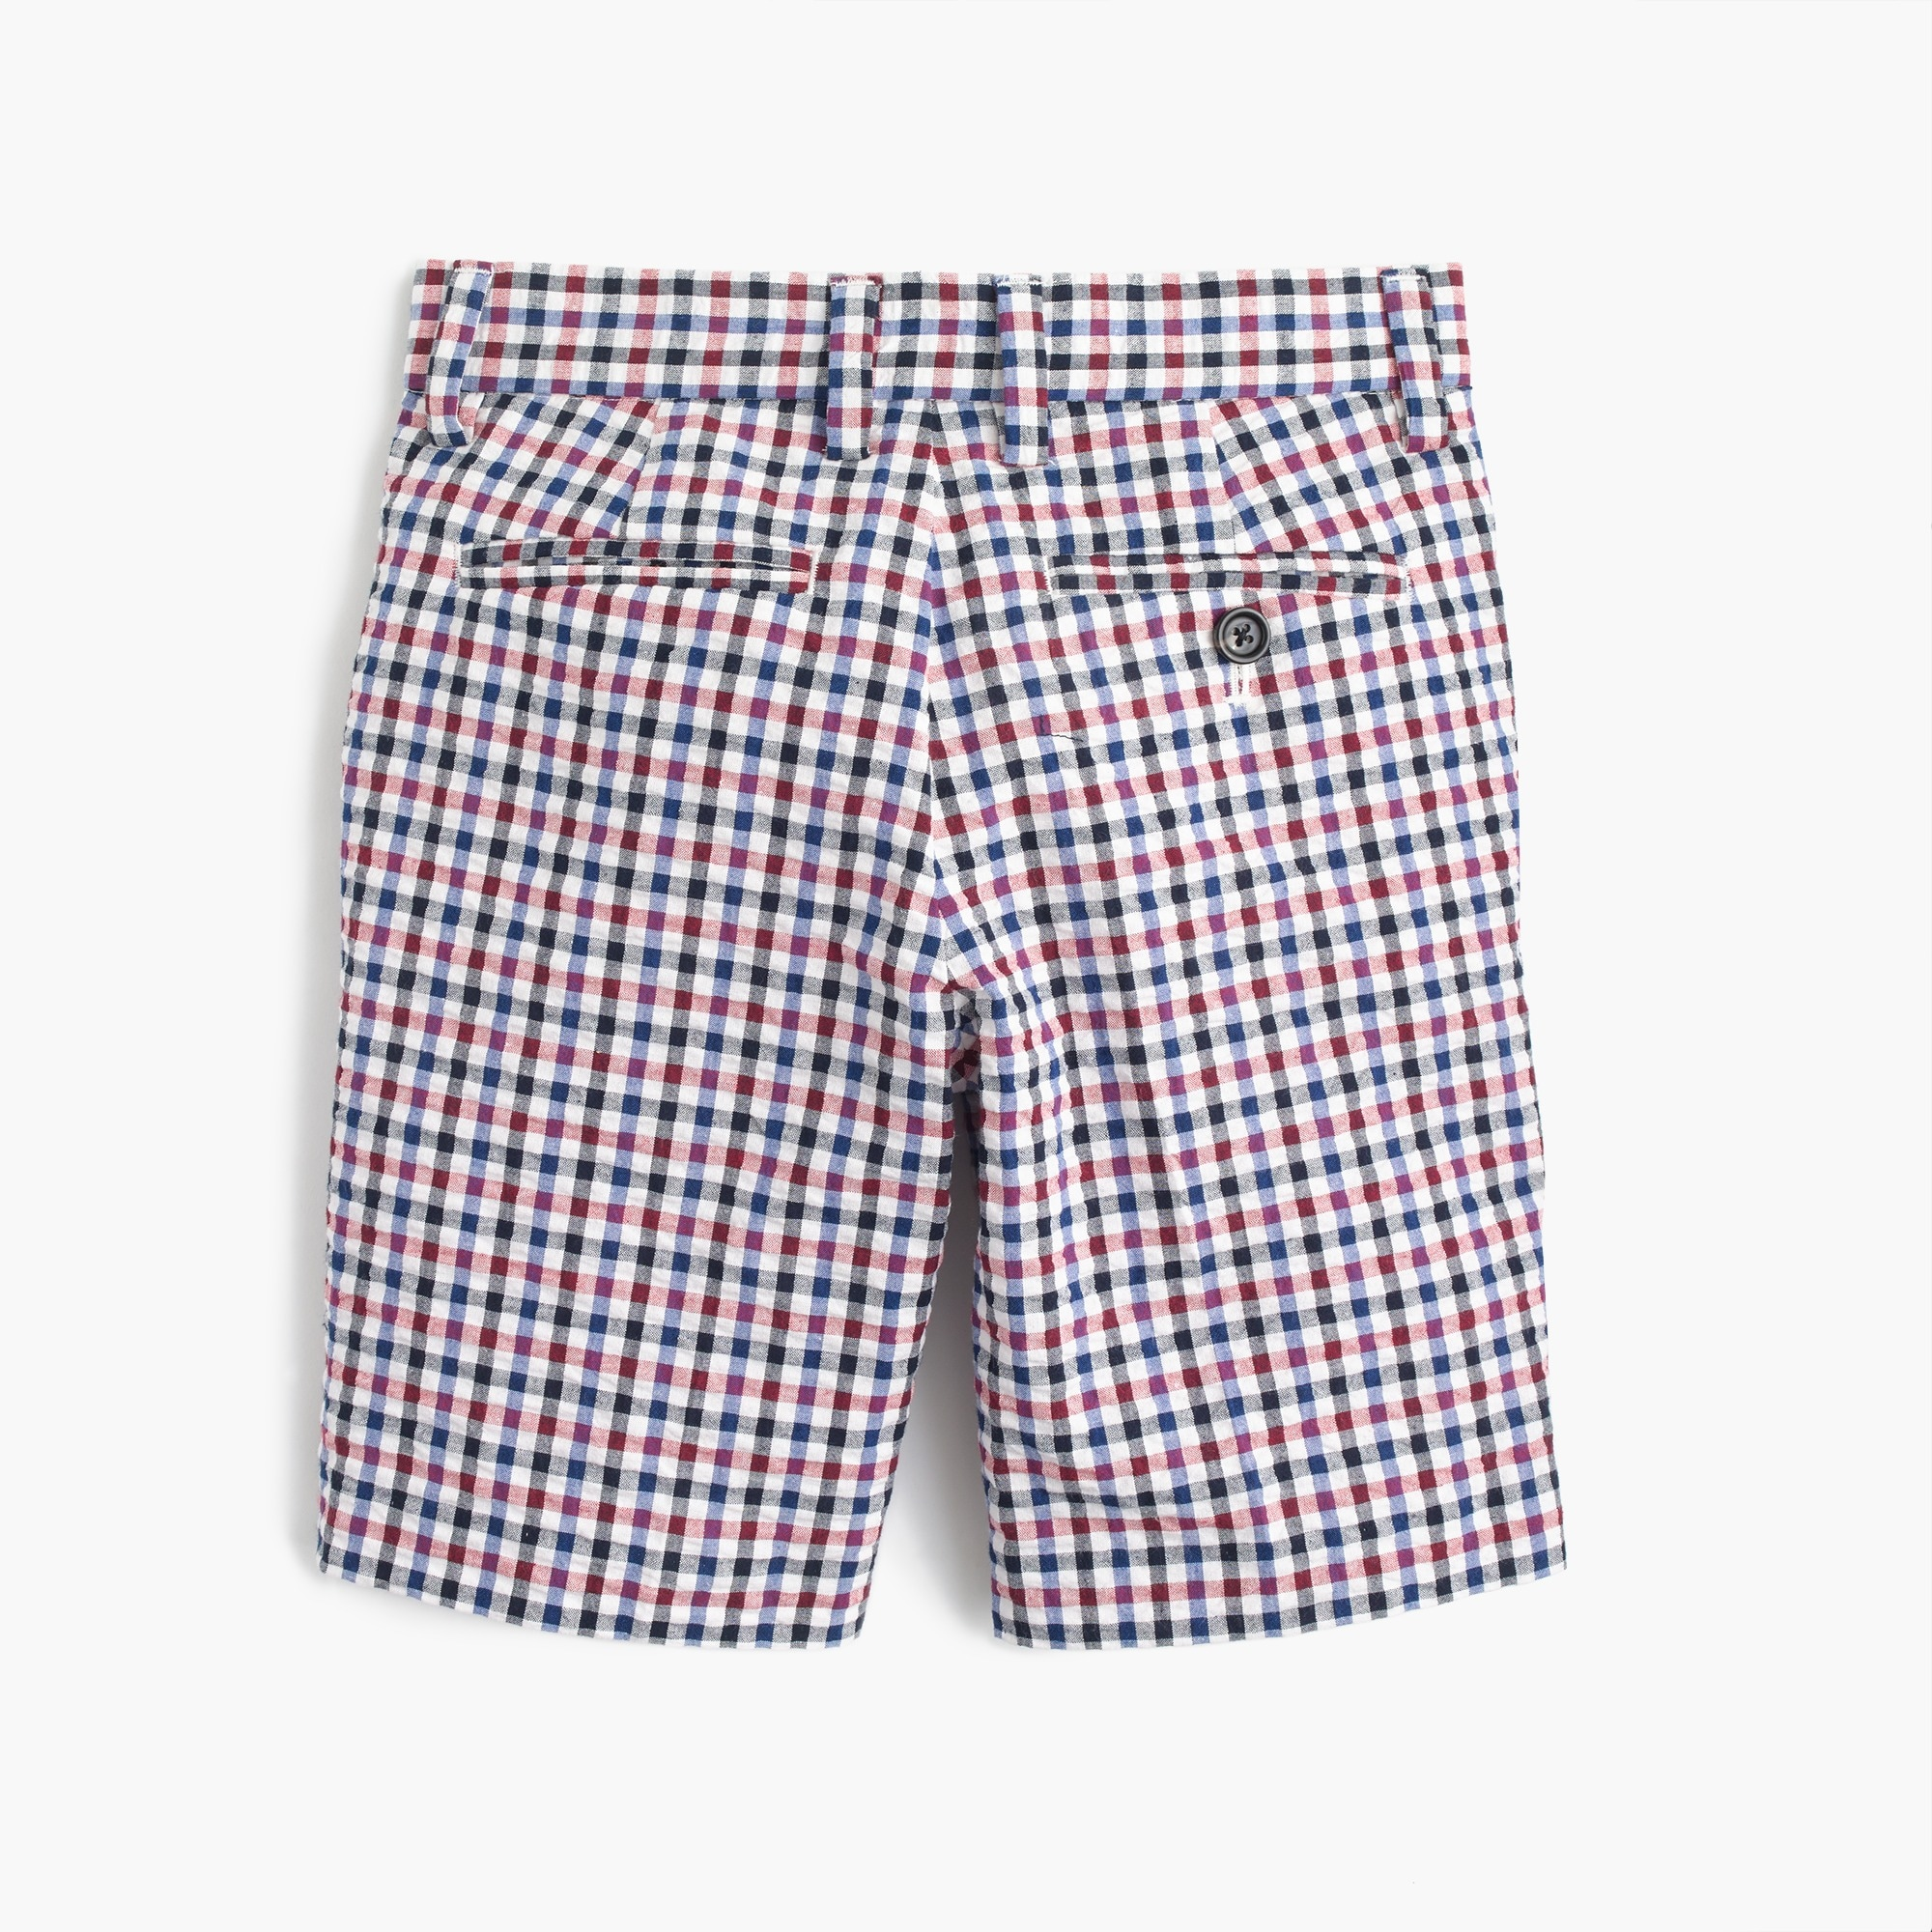 Image 2 for Boys' Ludlow suit short in puckered gingham